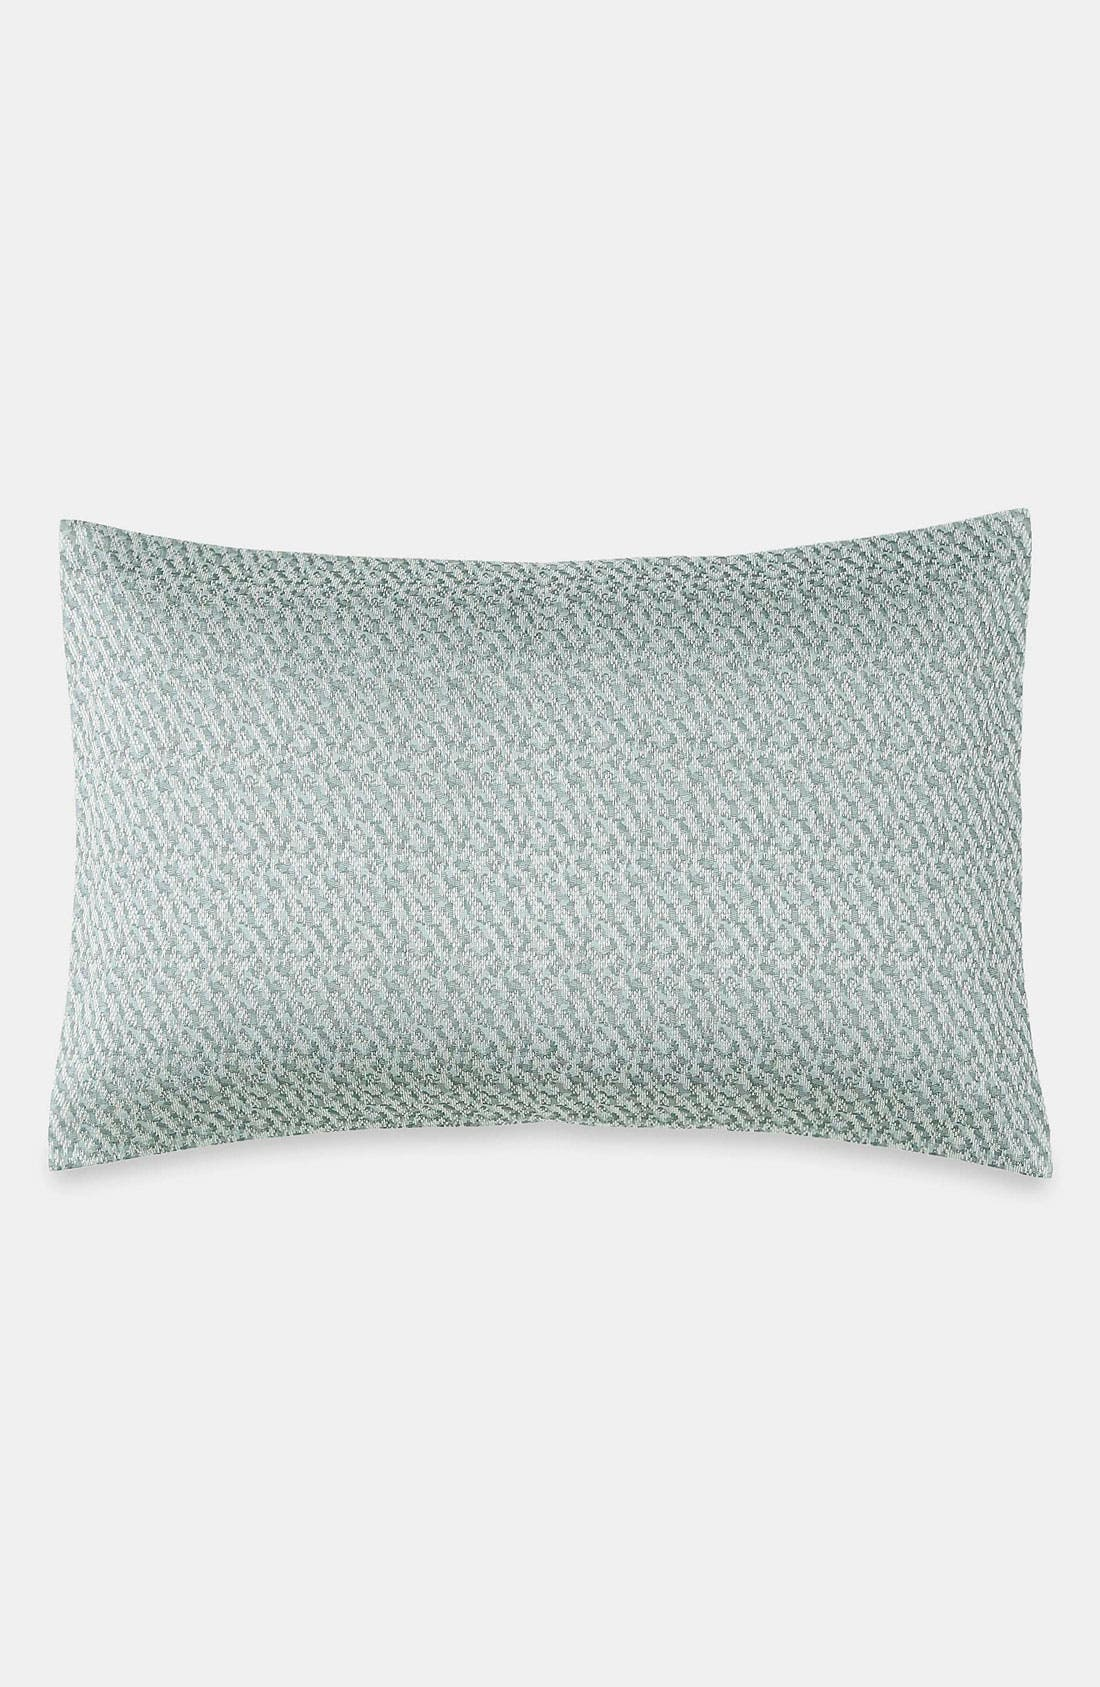 Main Image - DKNY 'Urban Space' Jacquard Pillow Sham